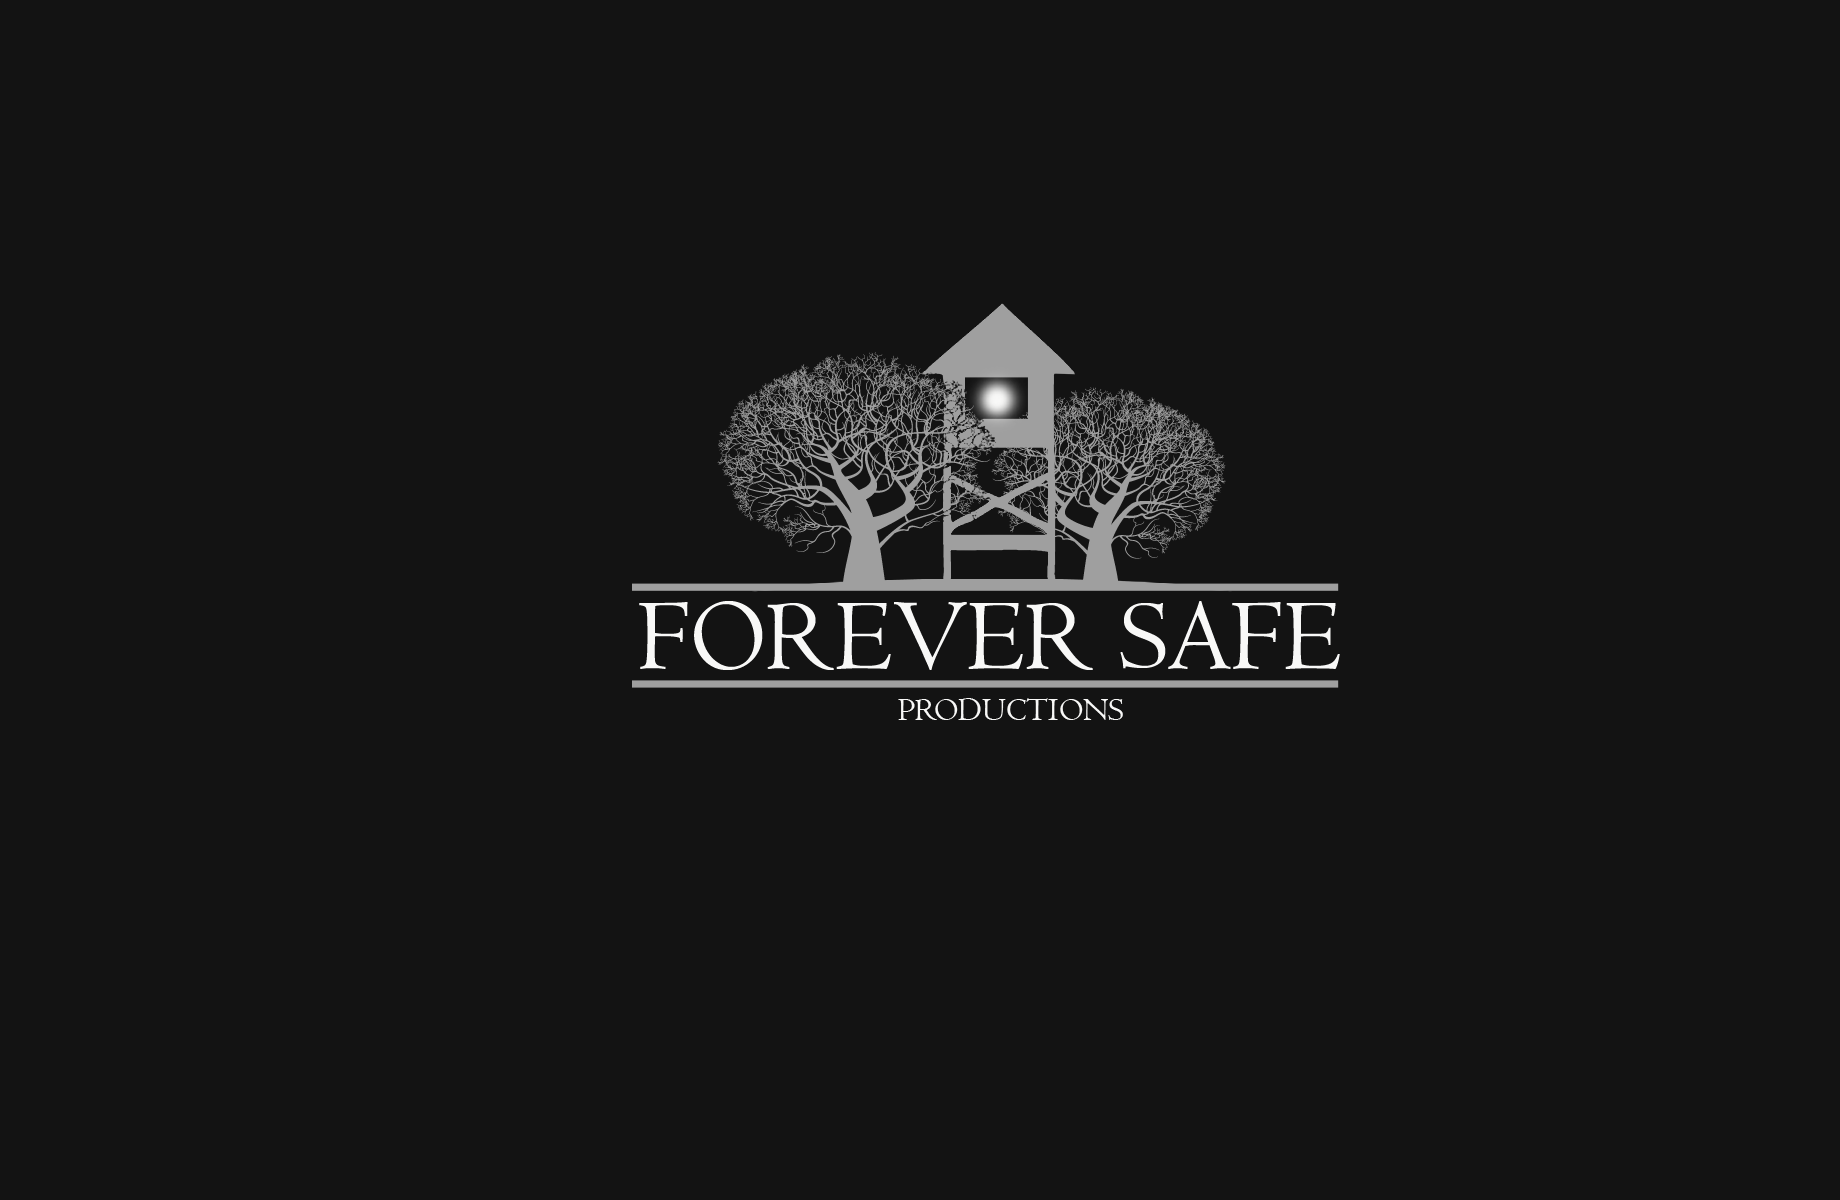 Logo Design by Jan Chua - Entry No. 9 in the Logo Design Contest Inspiring Logo Design for Forever Safe Productions.